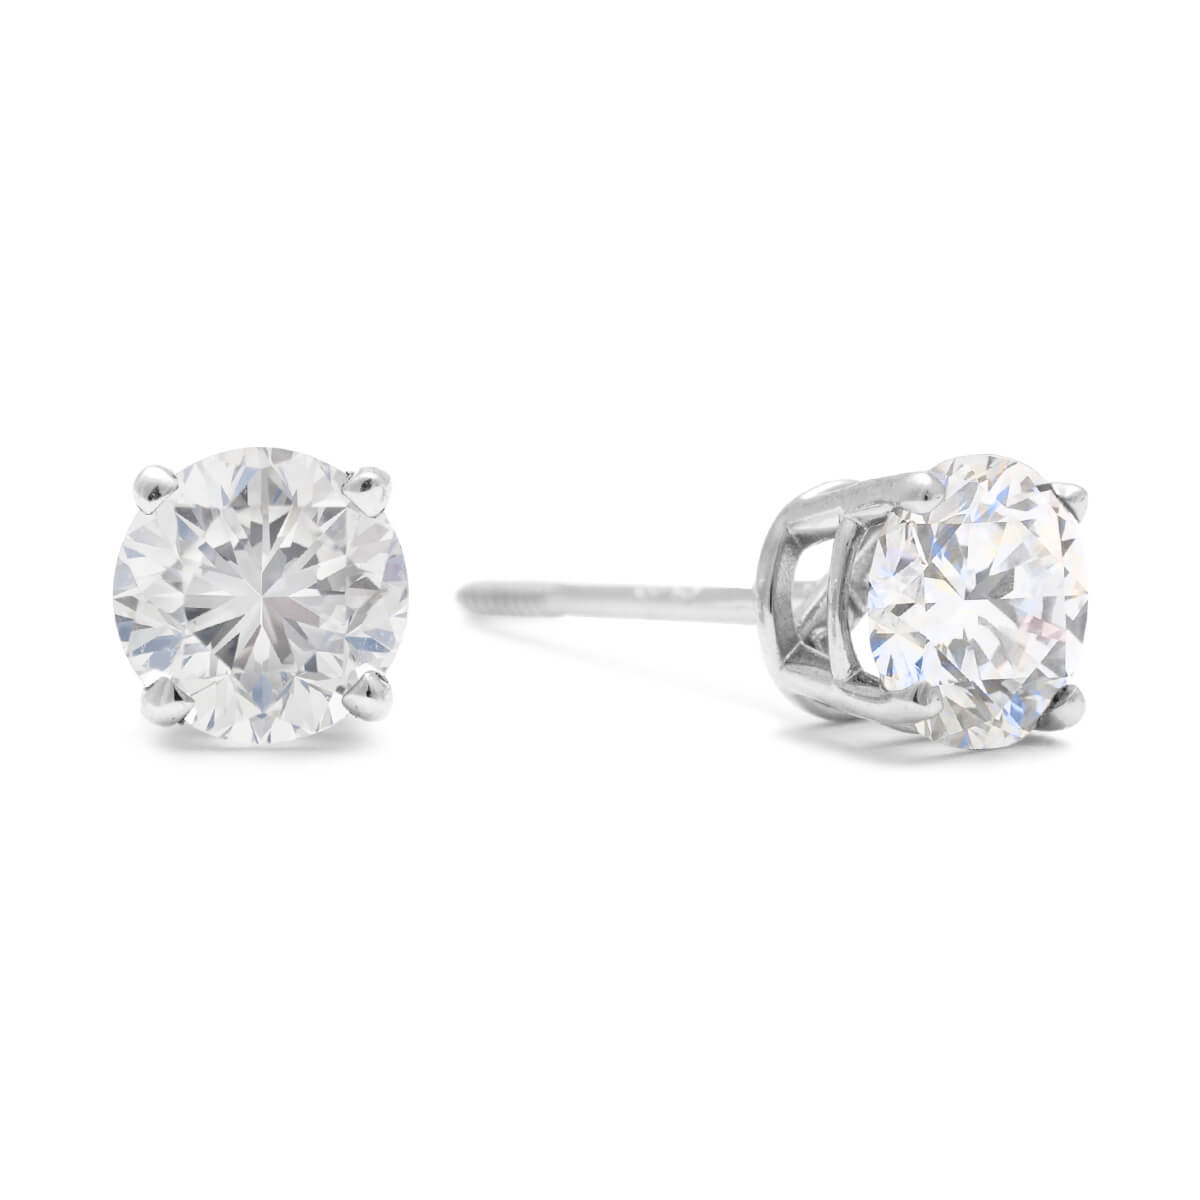 silver img timeless hudson earrings cz products carat sterling llc zirconia stud cubic real kim